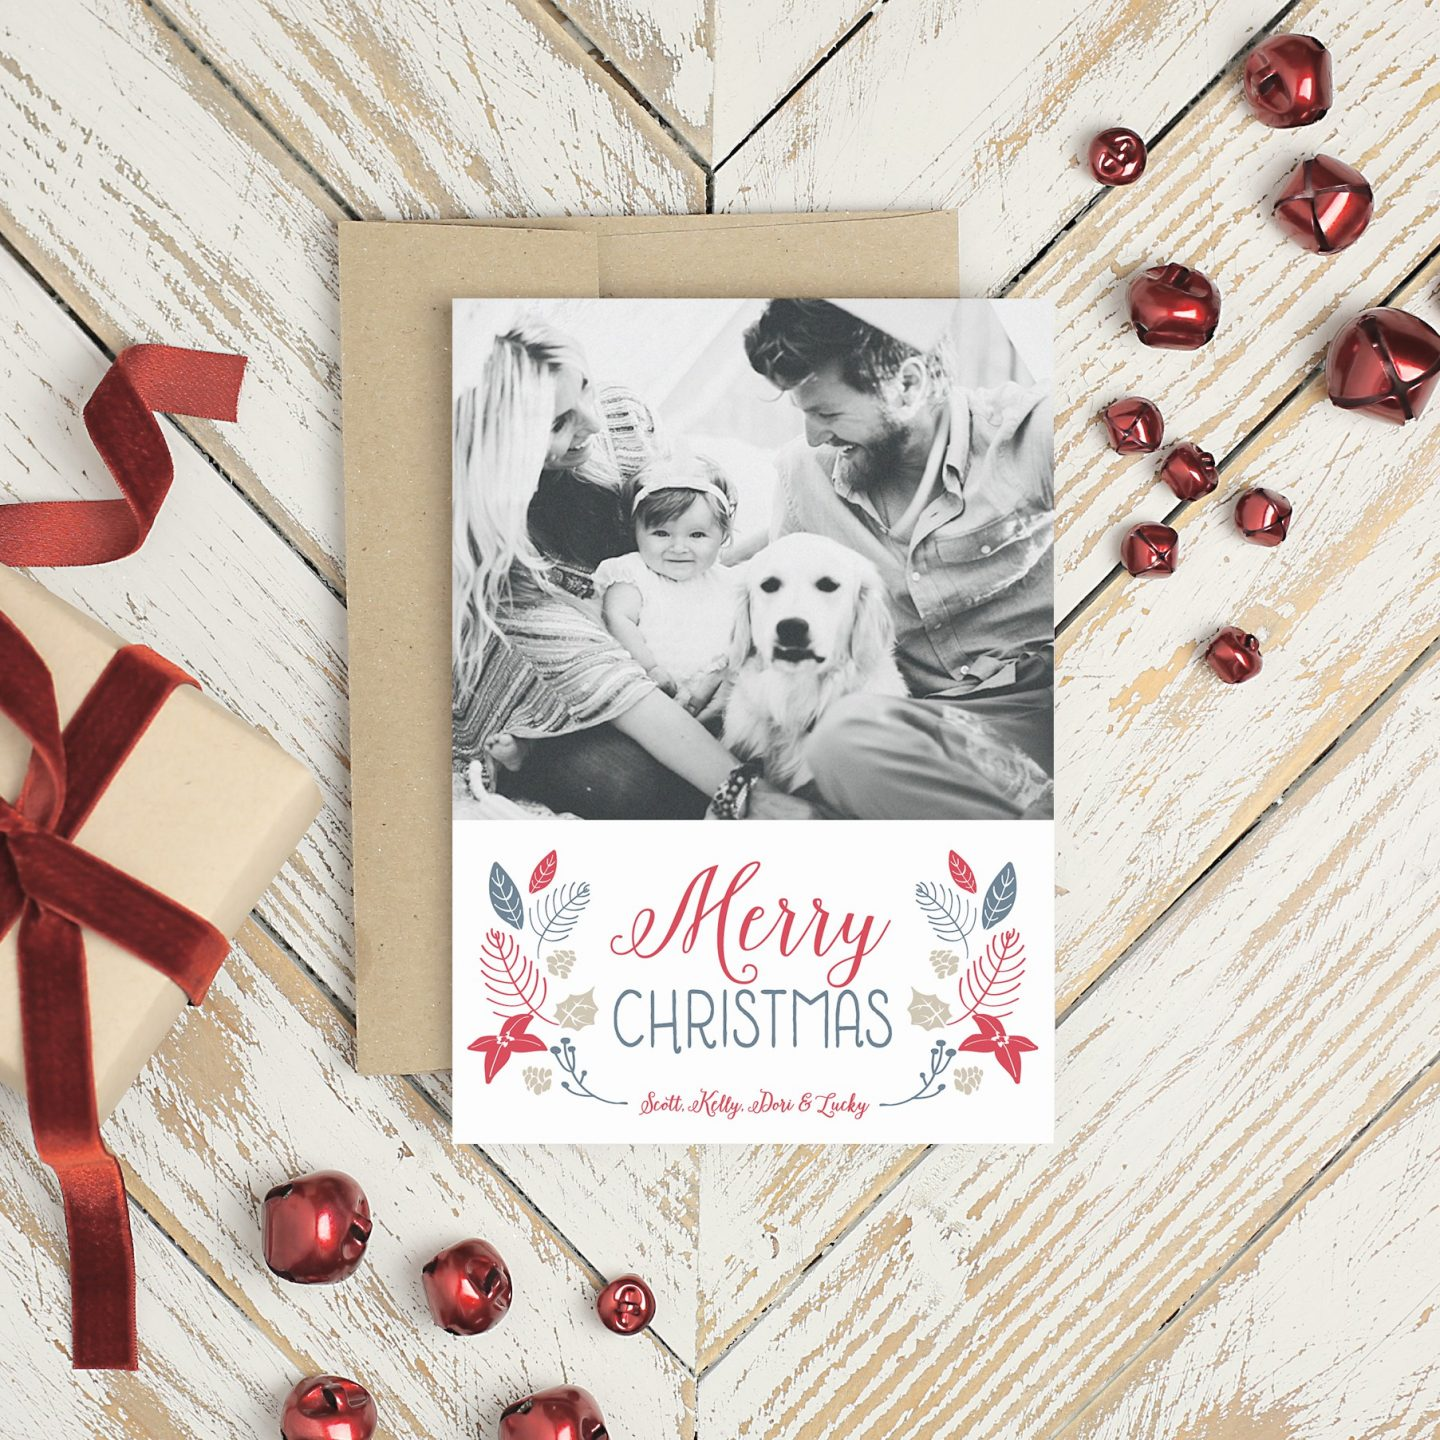 Holiday cards by basic invite for great impressions